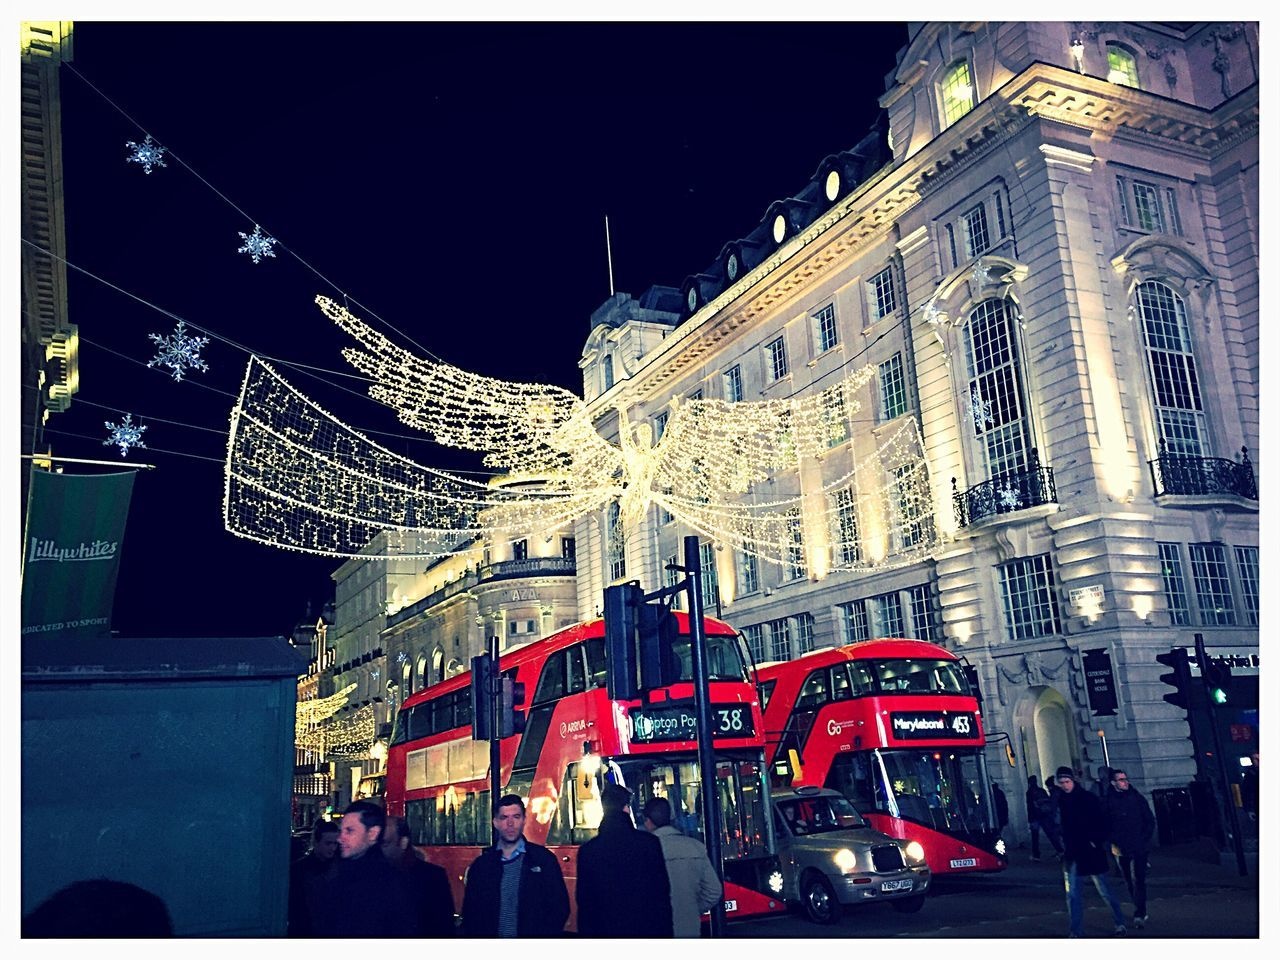 Regent street 2016 Regent Street  London LONDON❤ Christmas Lights Christmas Decoration Christmastime Angel Double Decker Bus London Bus Stars People Illuminated Red Building Exterior London Lifestyle